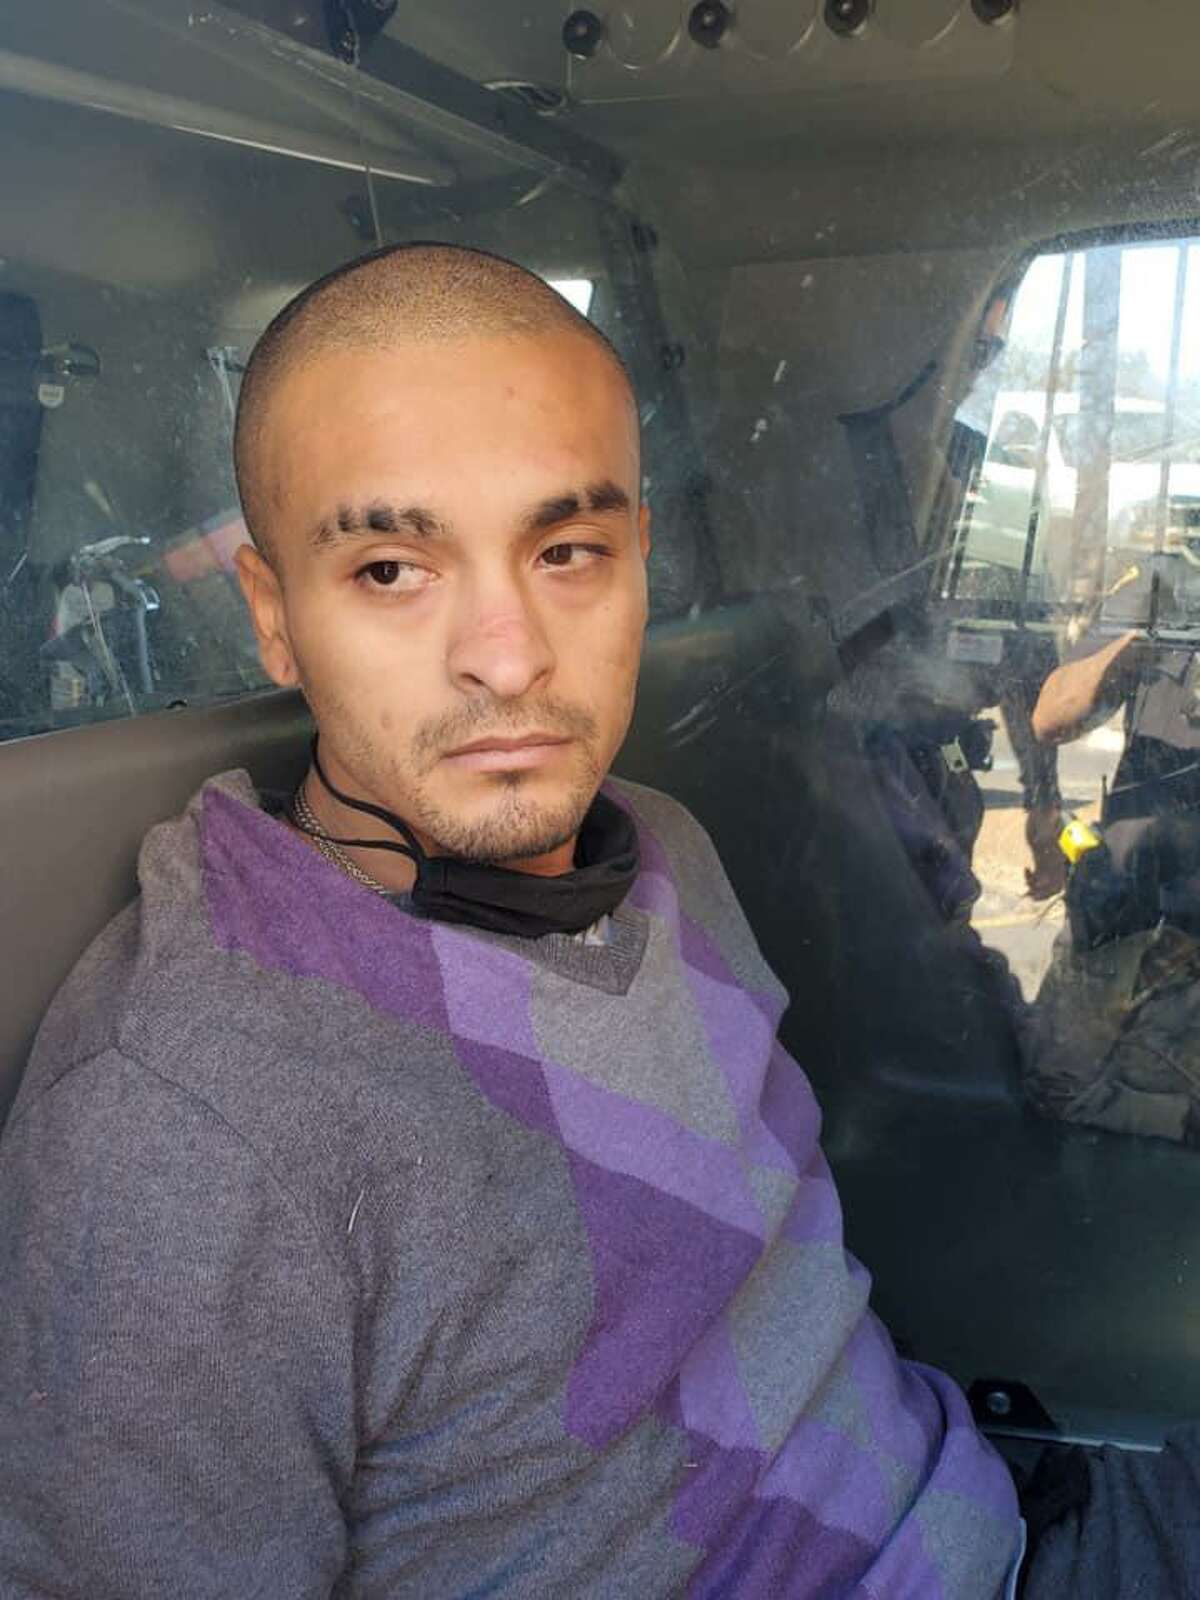 Wilfredo Montemayor, 27, was brought into custody Saturday morning. He is a suspect in the shooting of Balcones Heights Sgt. Joe Sepulveda, who was injured Wednesday.